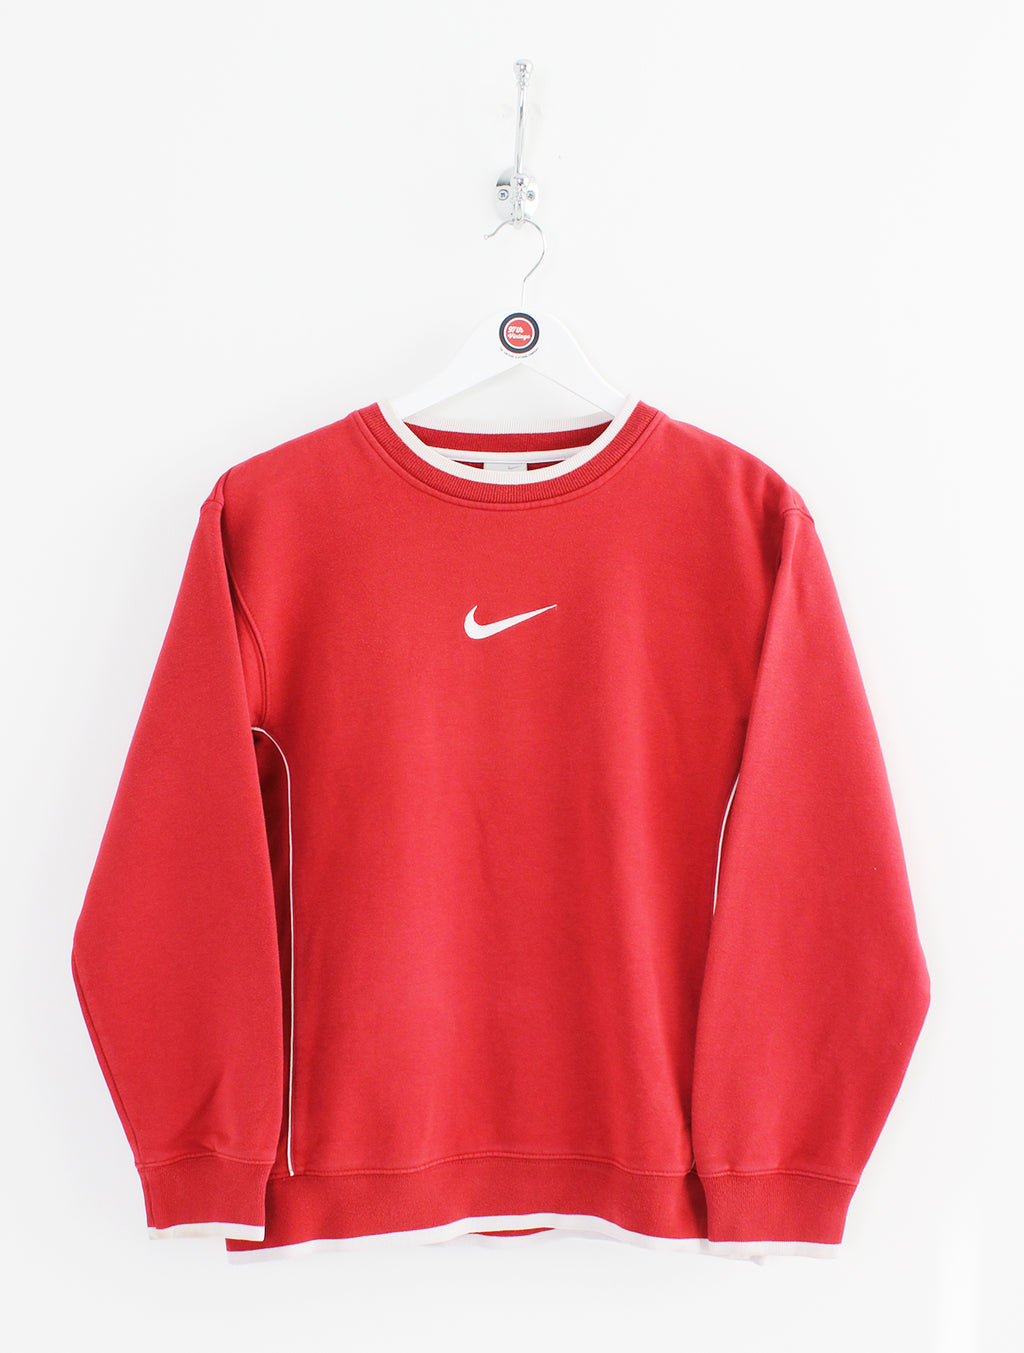 Women's Nike Sweatshirt (M)